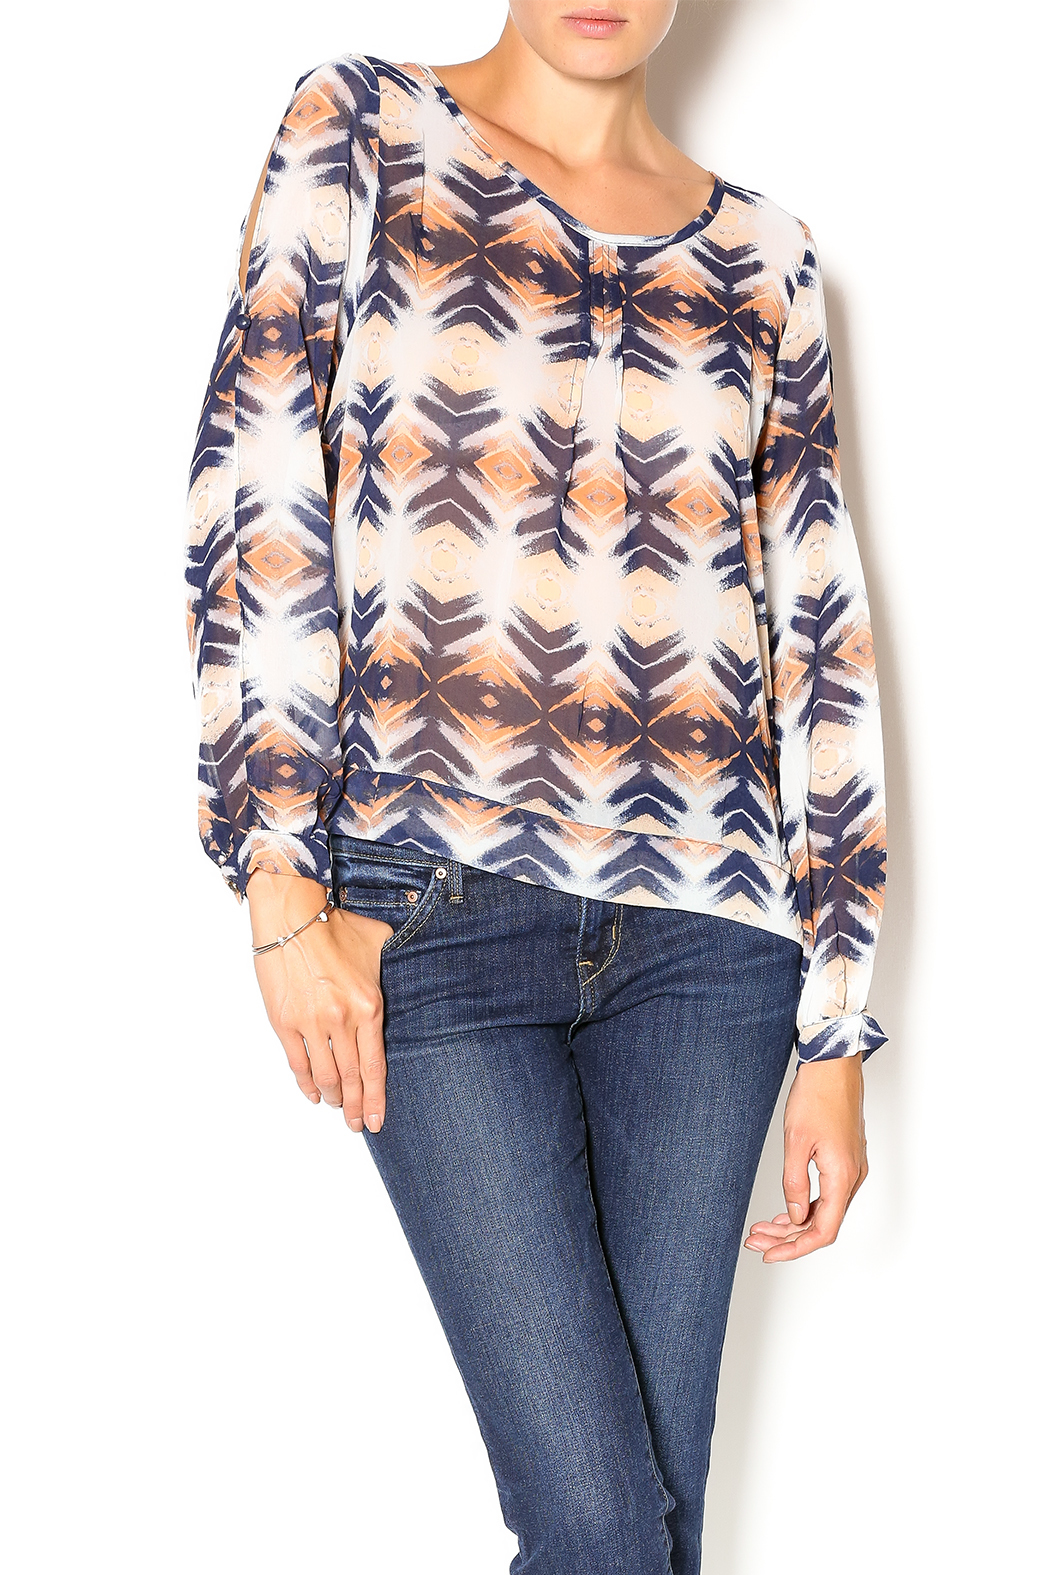 Umgee USA Sierra Nevada Blouse - Front Cropped Image